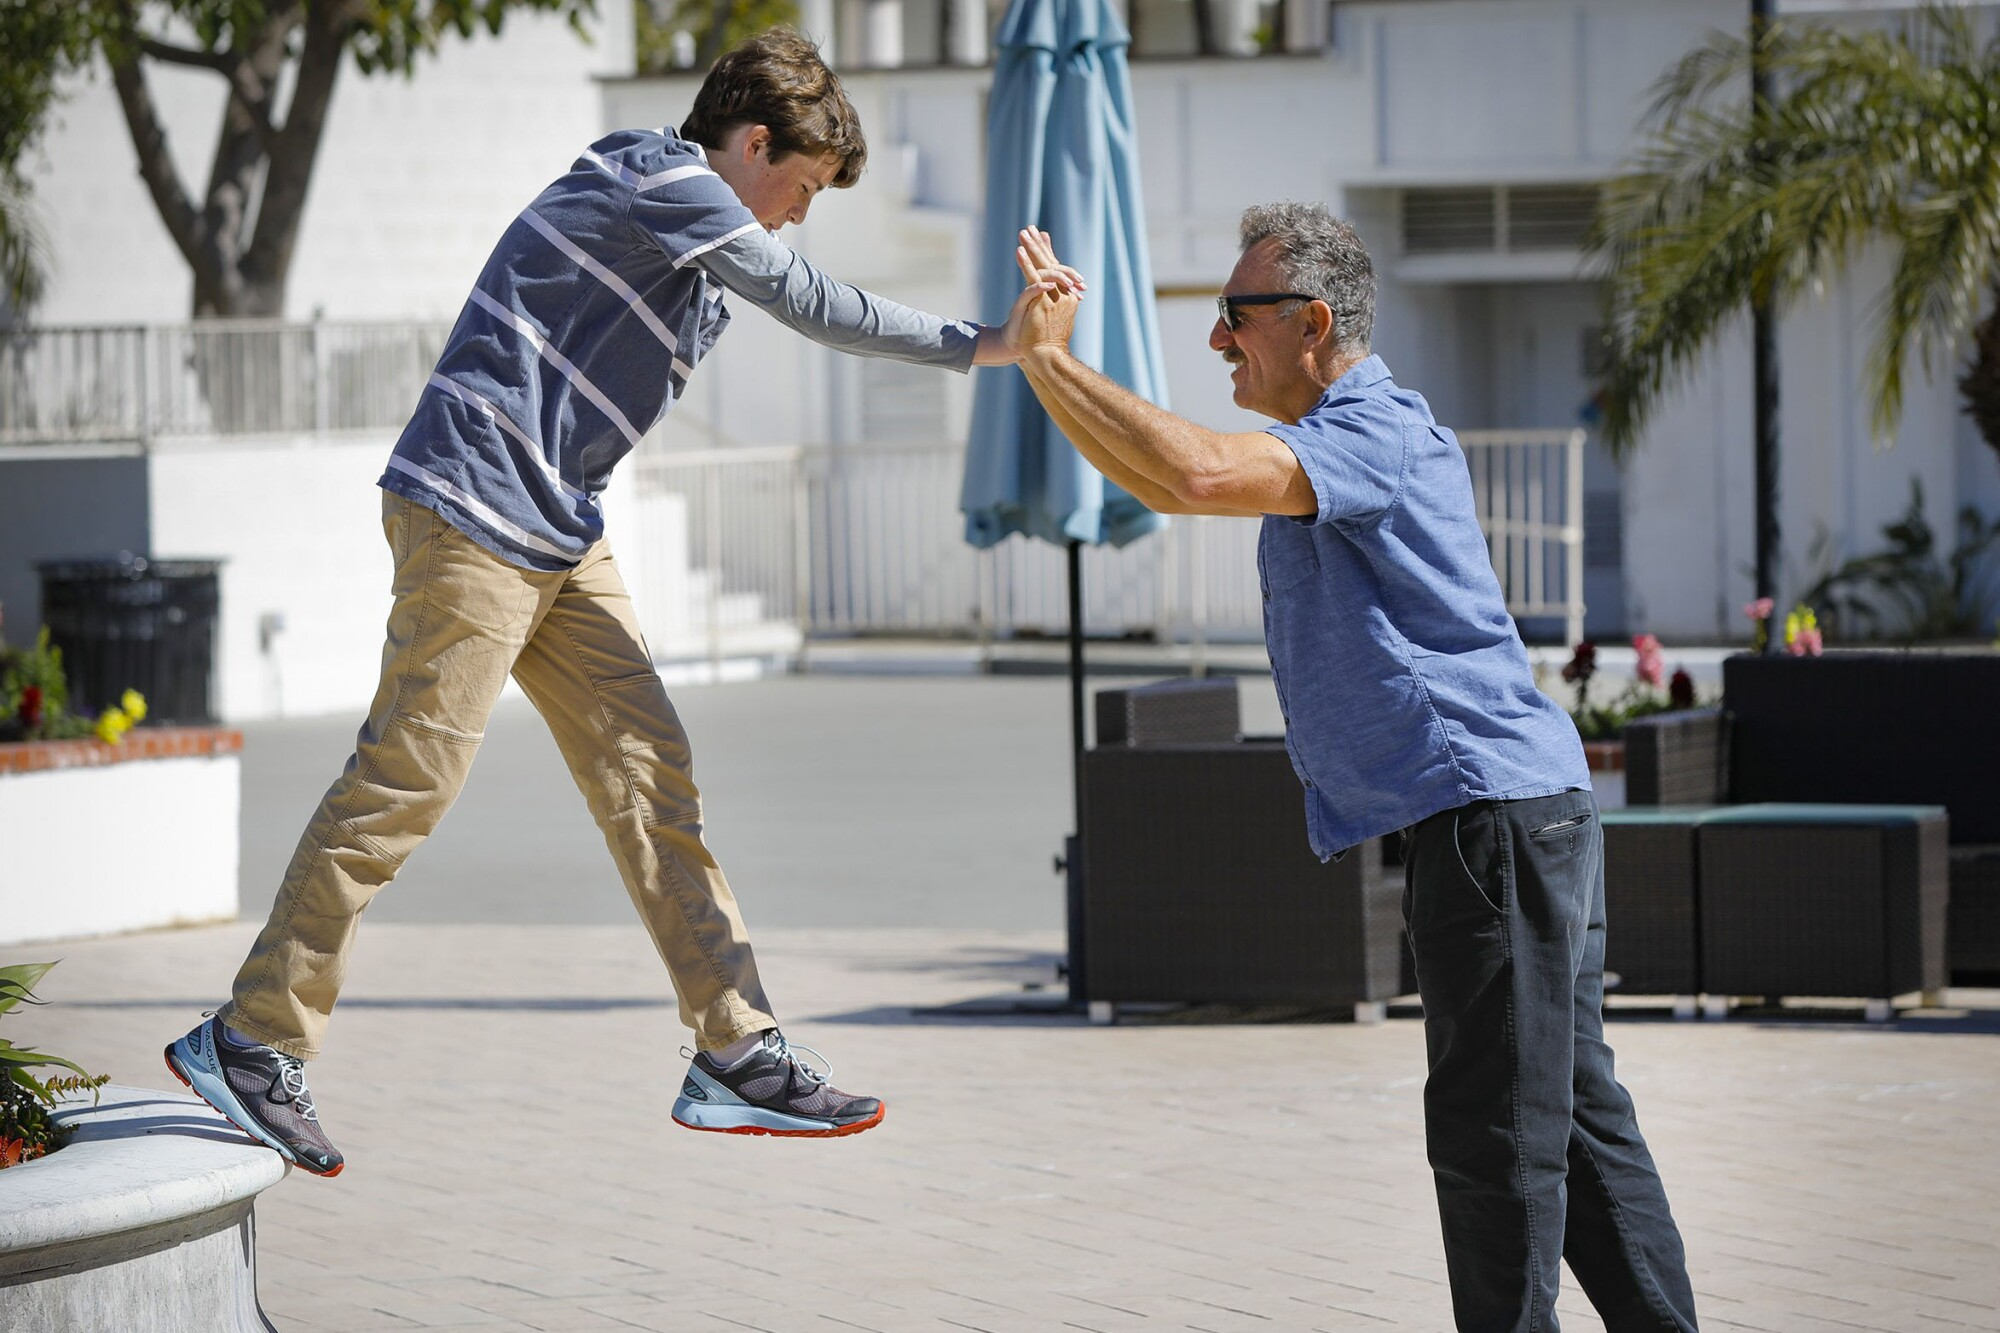 Otto Lana, left, plays with his dad, Claudio Lana, right, during the 36th annual Cal-TASH conference on disability rights at the Town and Country San Diego. Otto has autism and apraxia which prevents him from speaking words with his mouth.